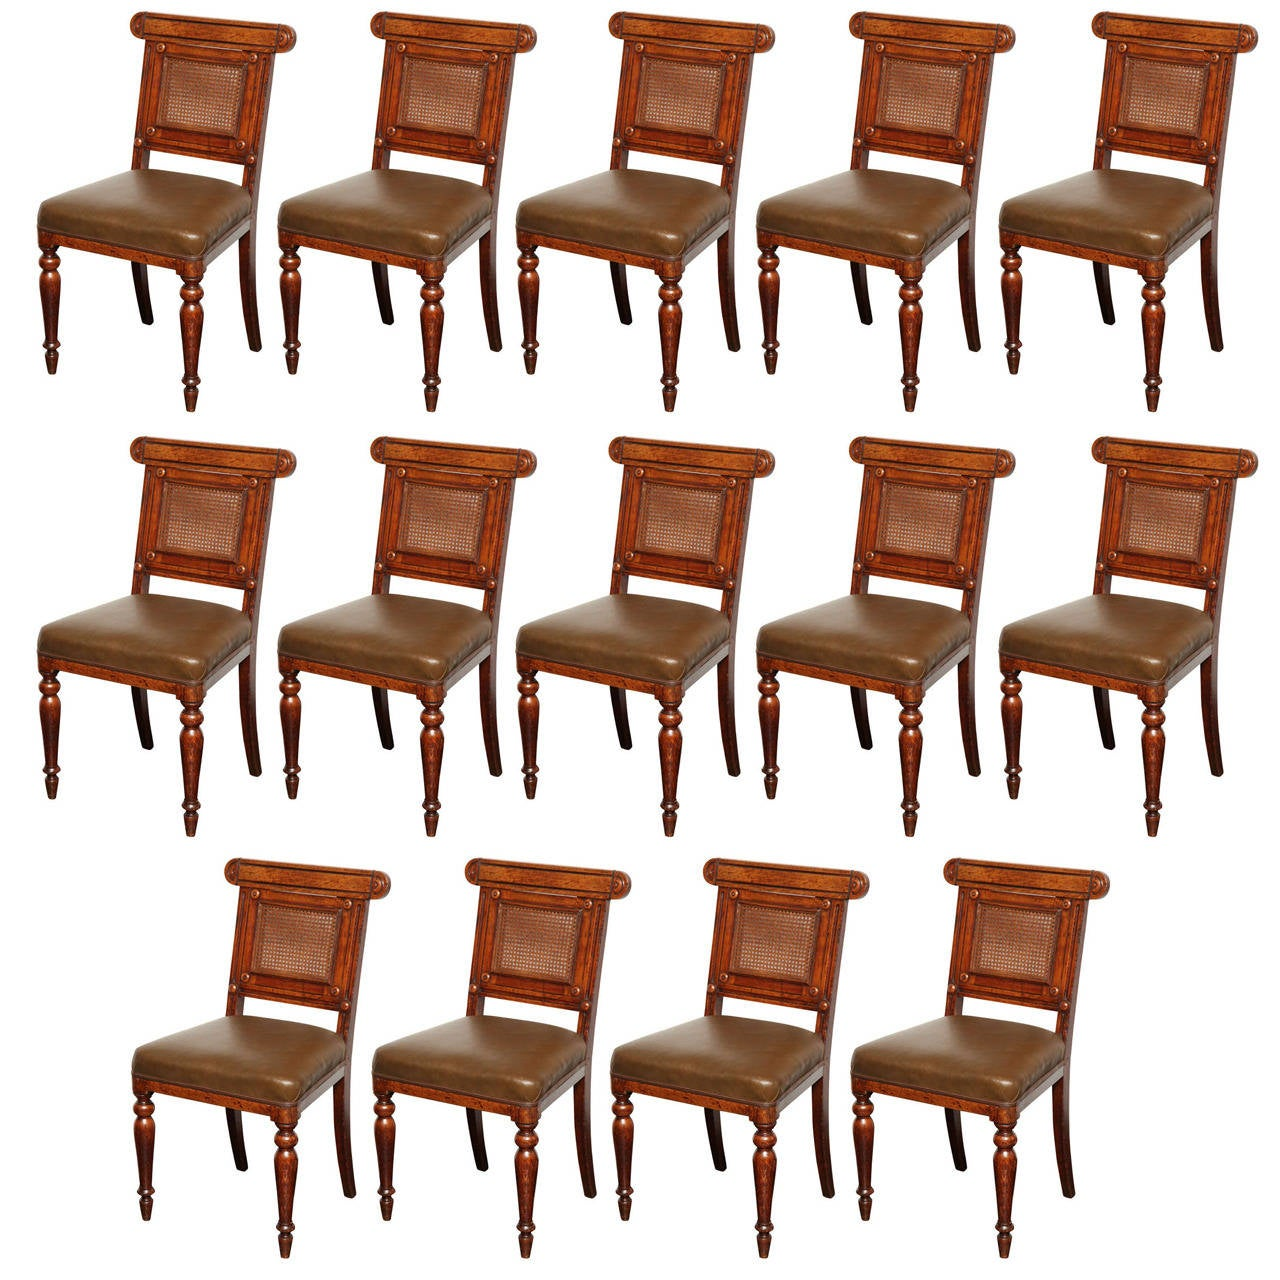 Set of 14 george iv oak dining chairs at 1stdibs for Oak dining room chairs